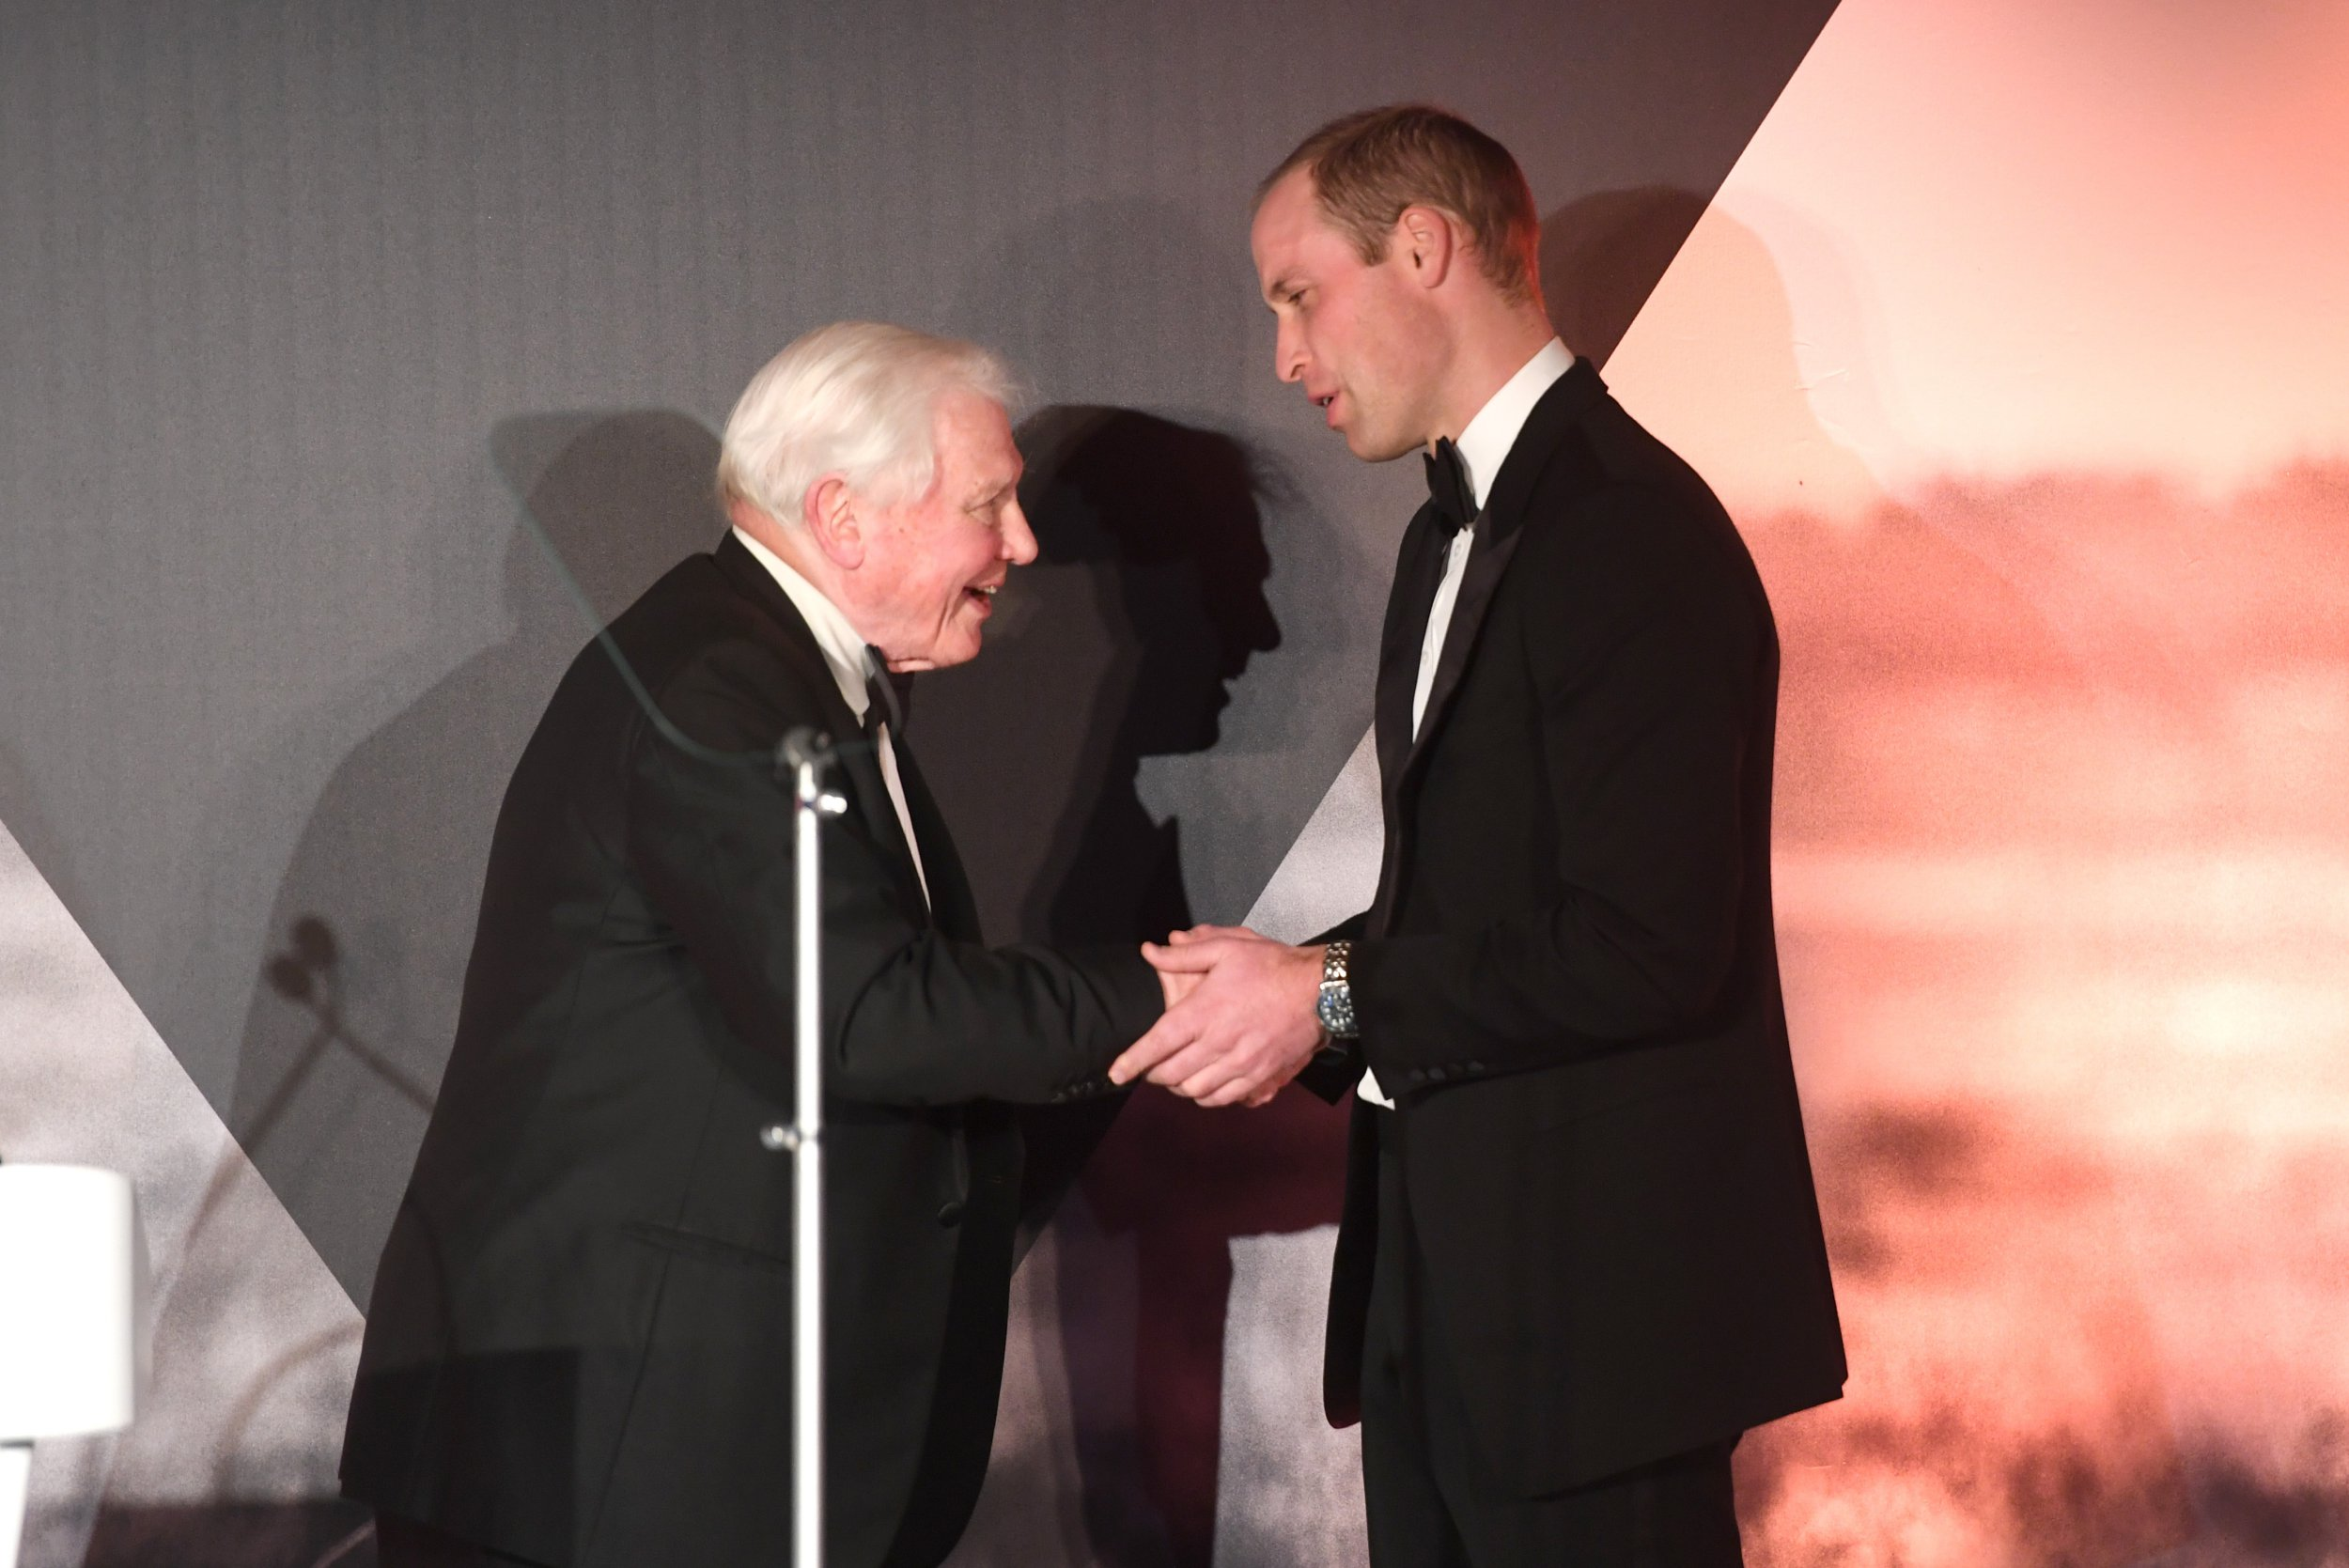 LONDON, ENGLAND - NOVEMBER 30: Prince William, Duke of Cambridge presents Sir David Attenborough an award for his services to wildlife during the Tusk Trust Awards at Victoria & Albert Museum on November 30, 2016 in London, England. (Photo by Stuart C. Wilson/Getty Images)